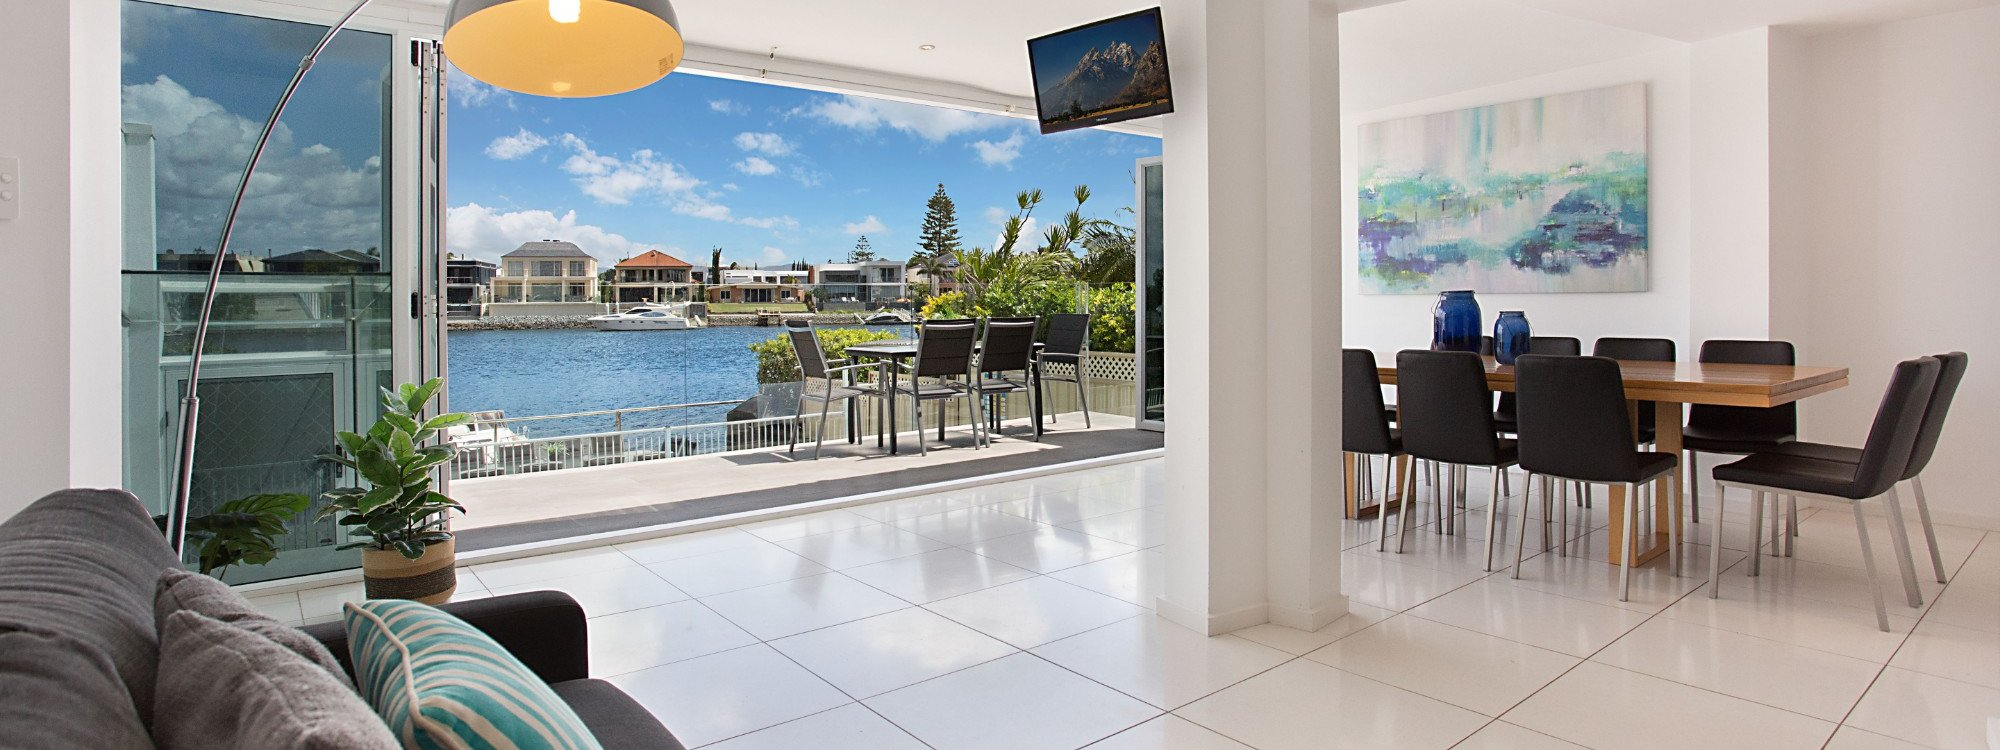 Casa Grande on the Water - Surfers Paradise - Living area with canal view